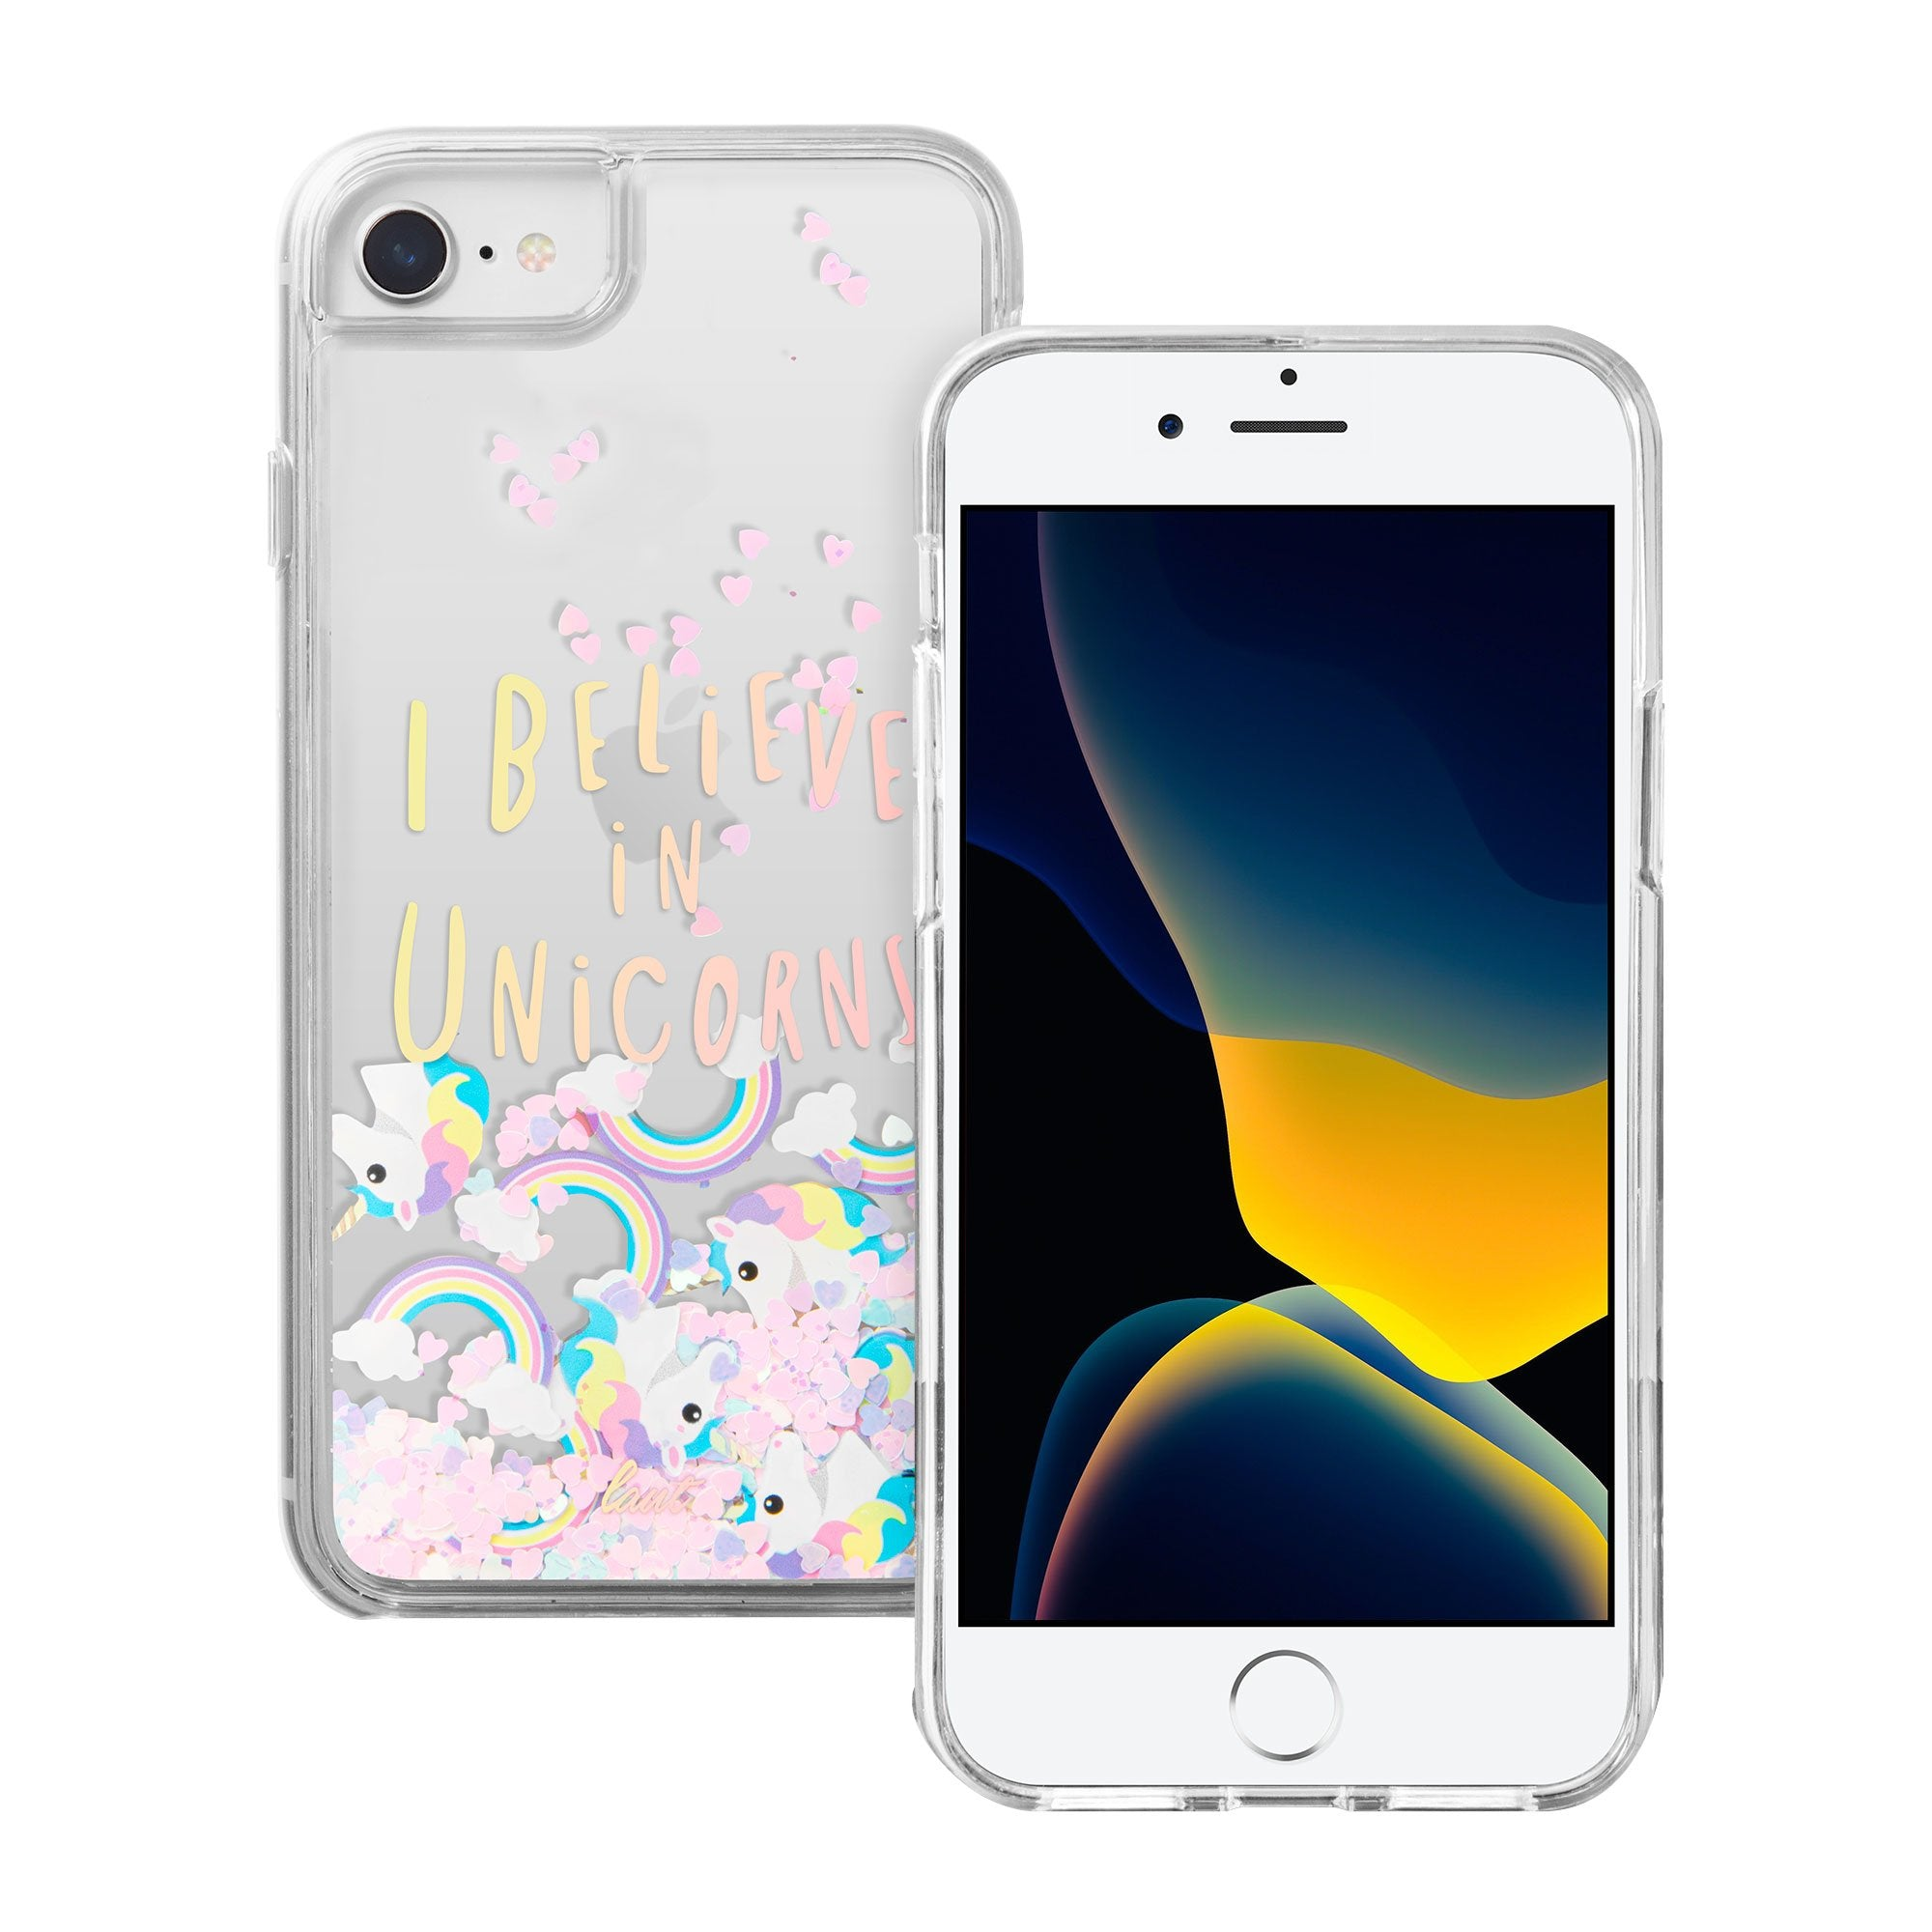 Liquid GLITTER UNICORNS case for iPhone SE 2020 / iPhone 8/7